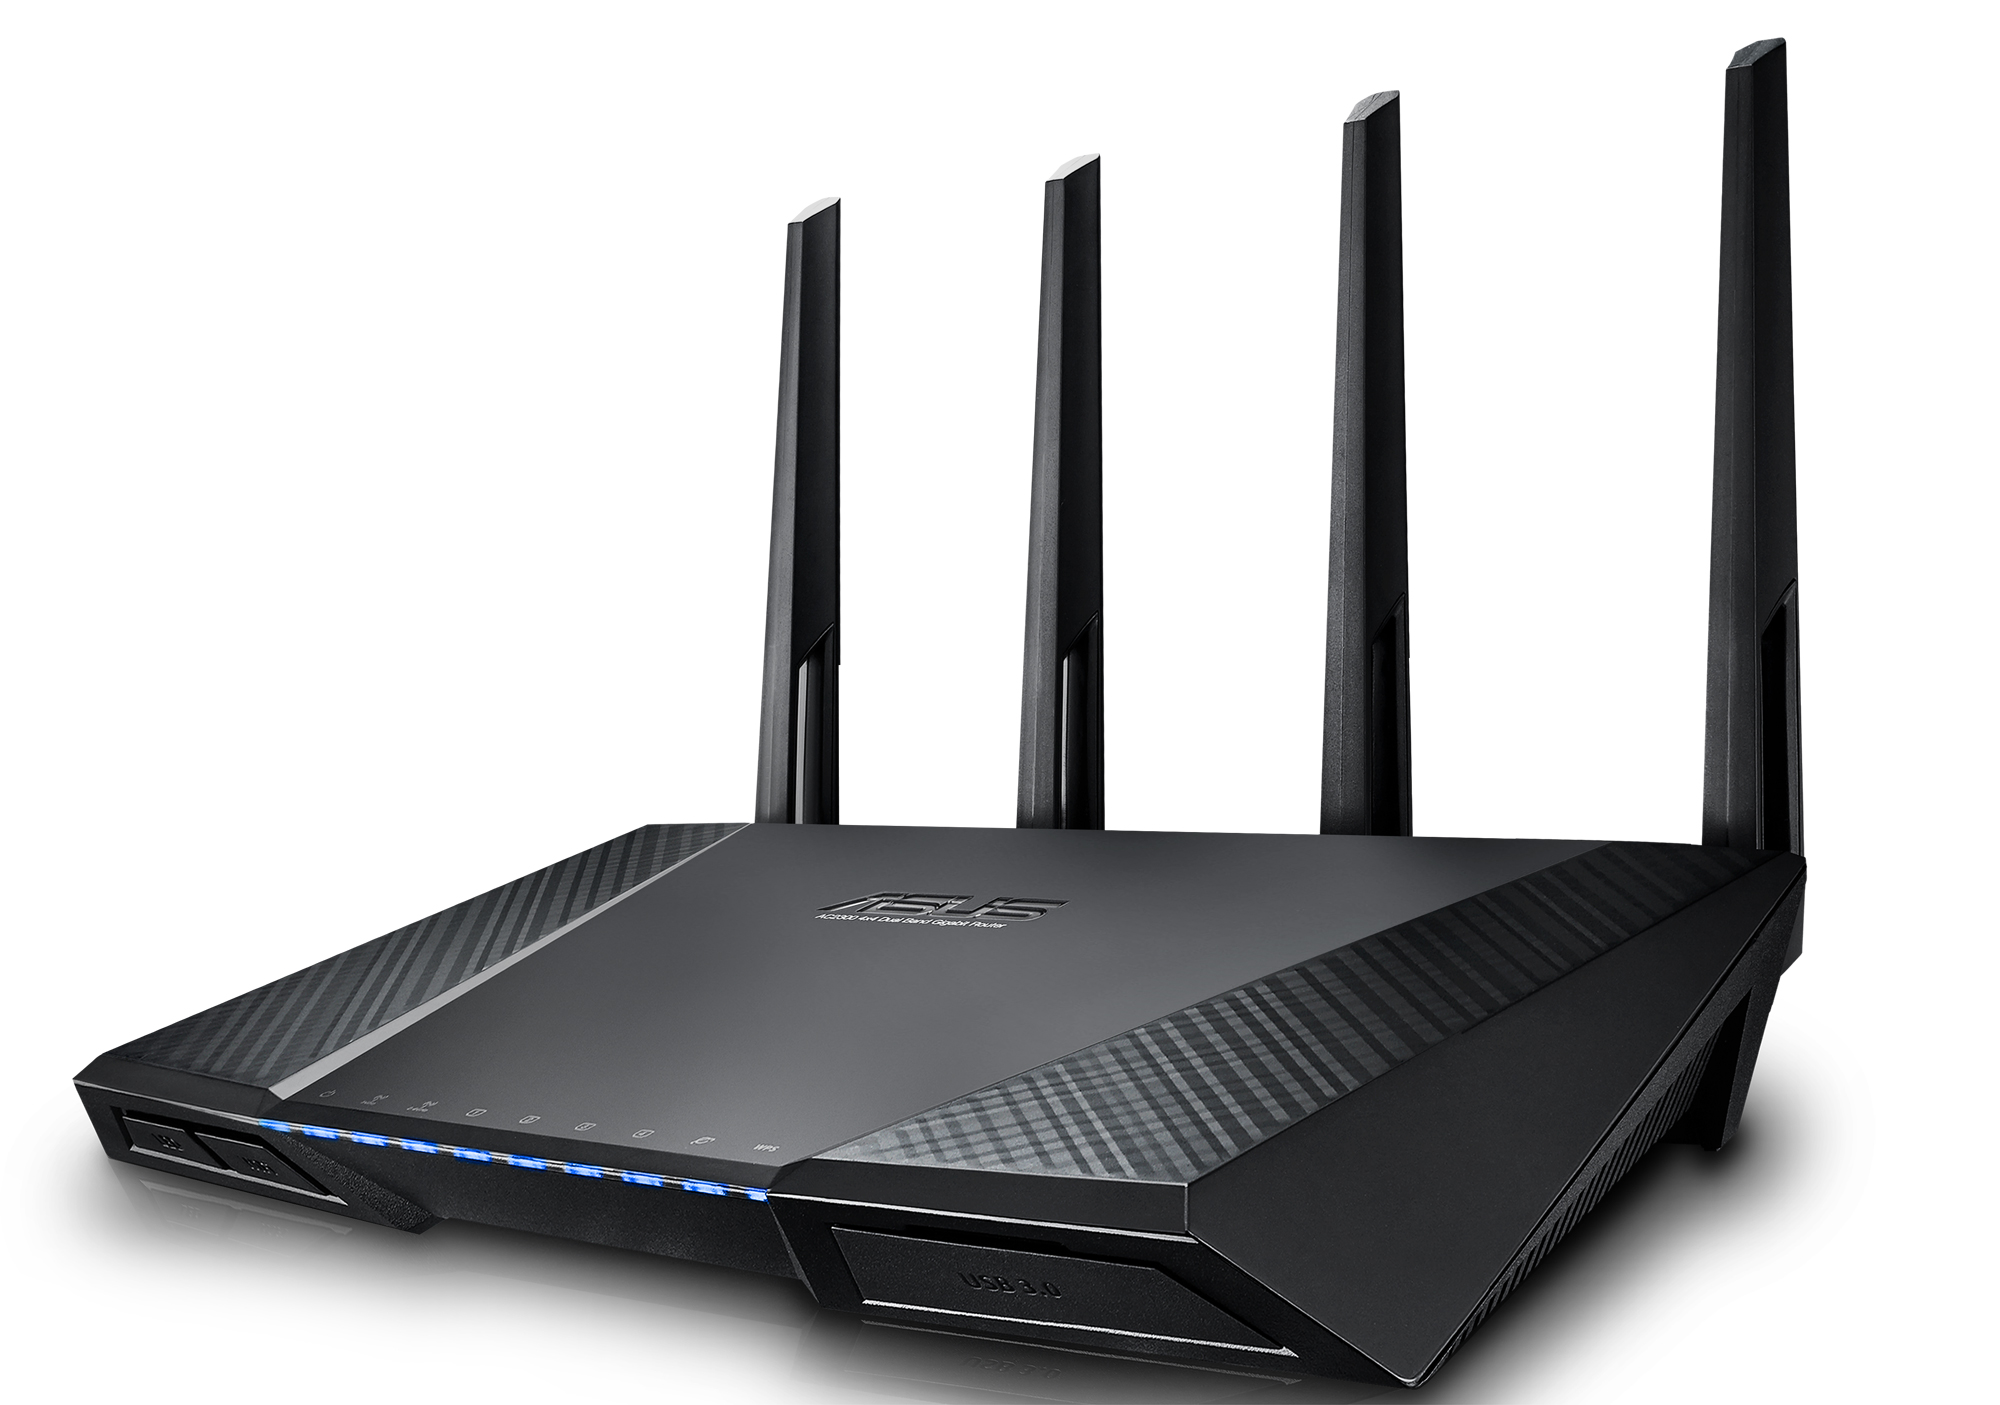 asus router guide